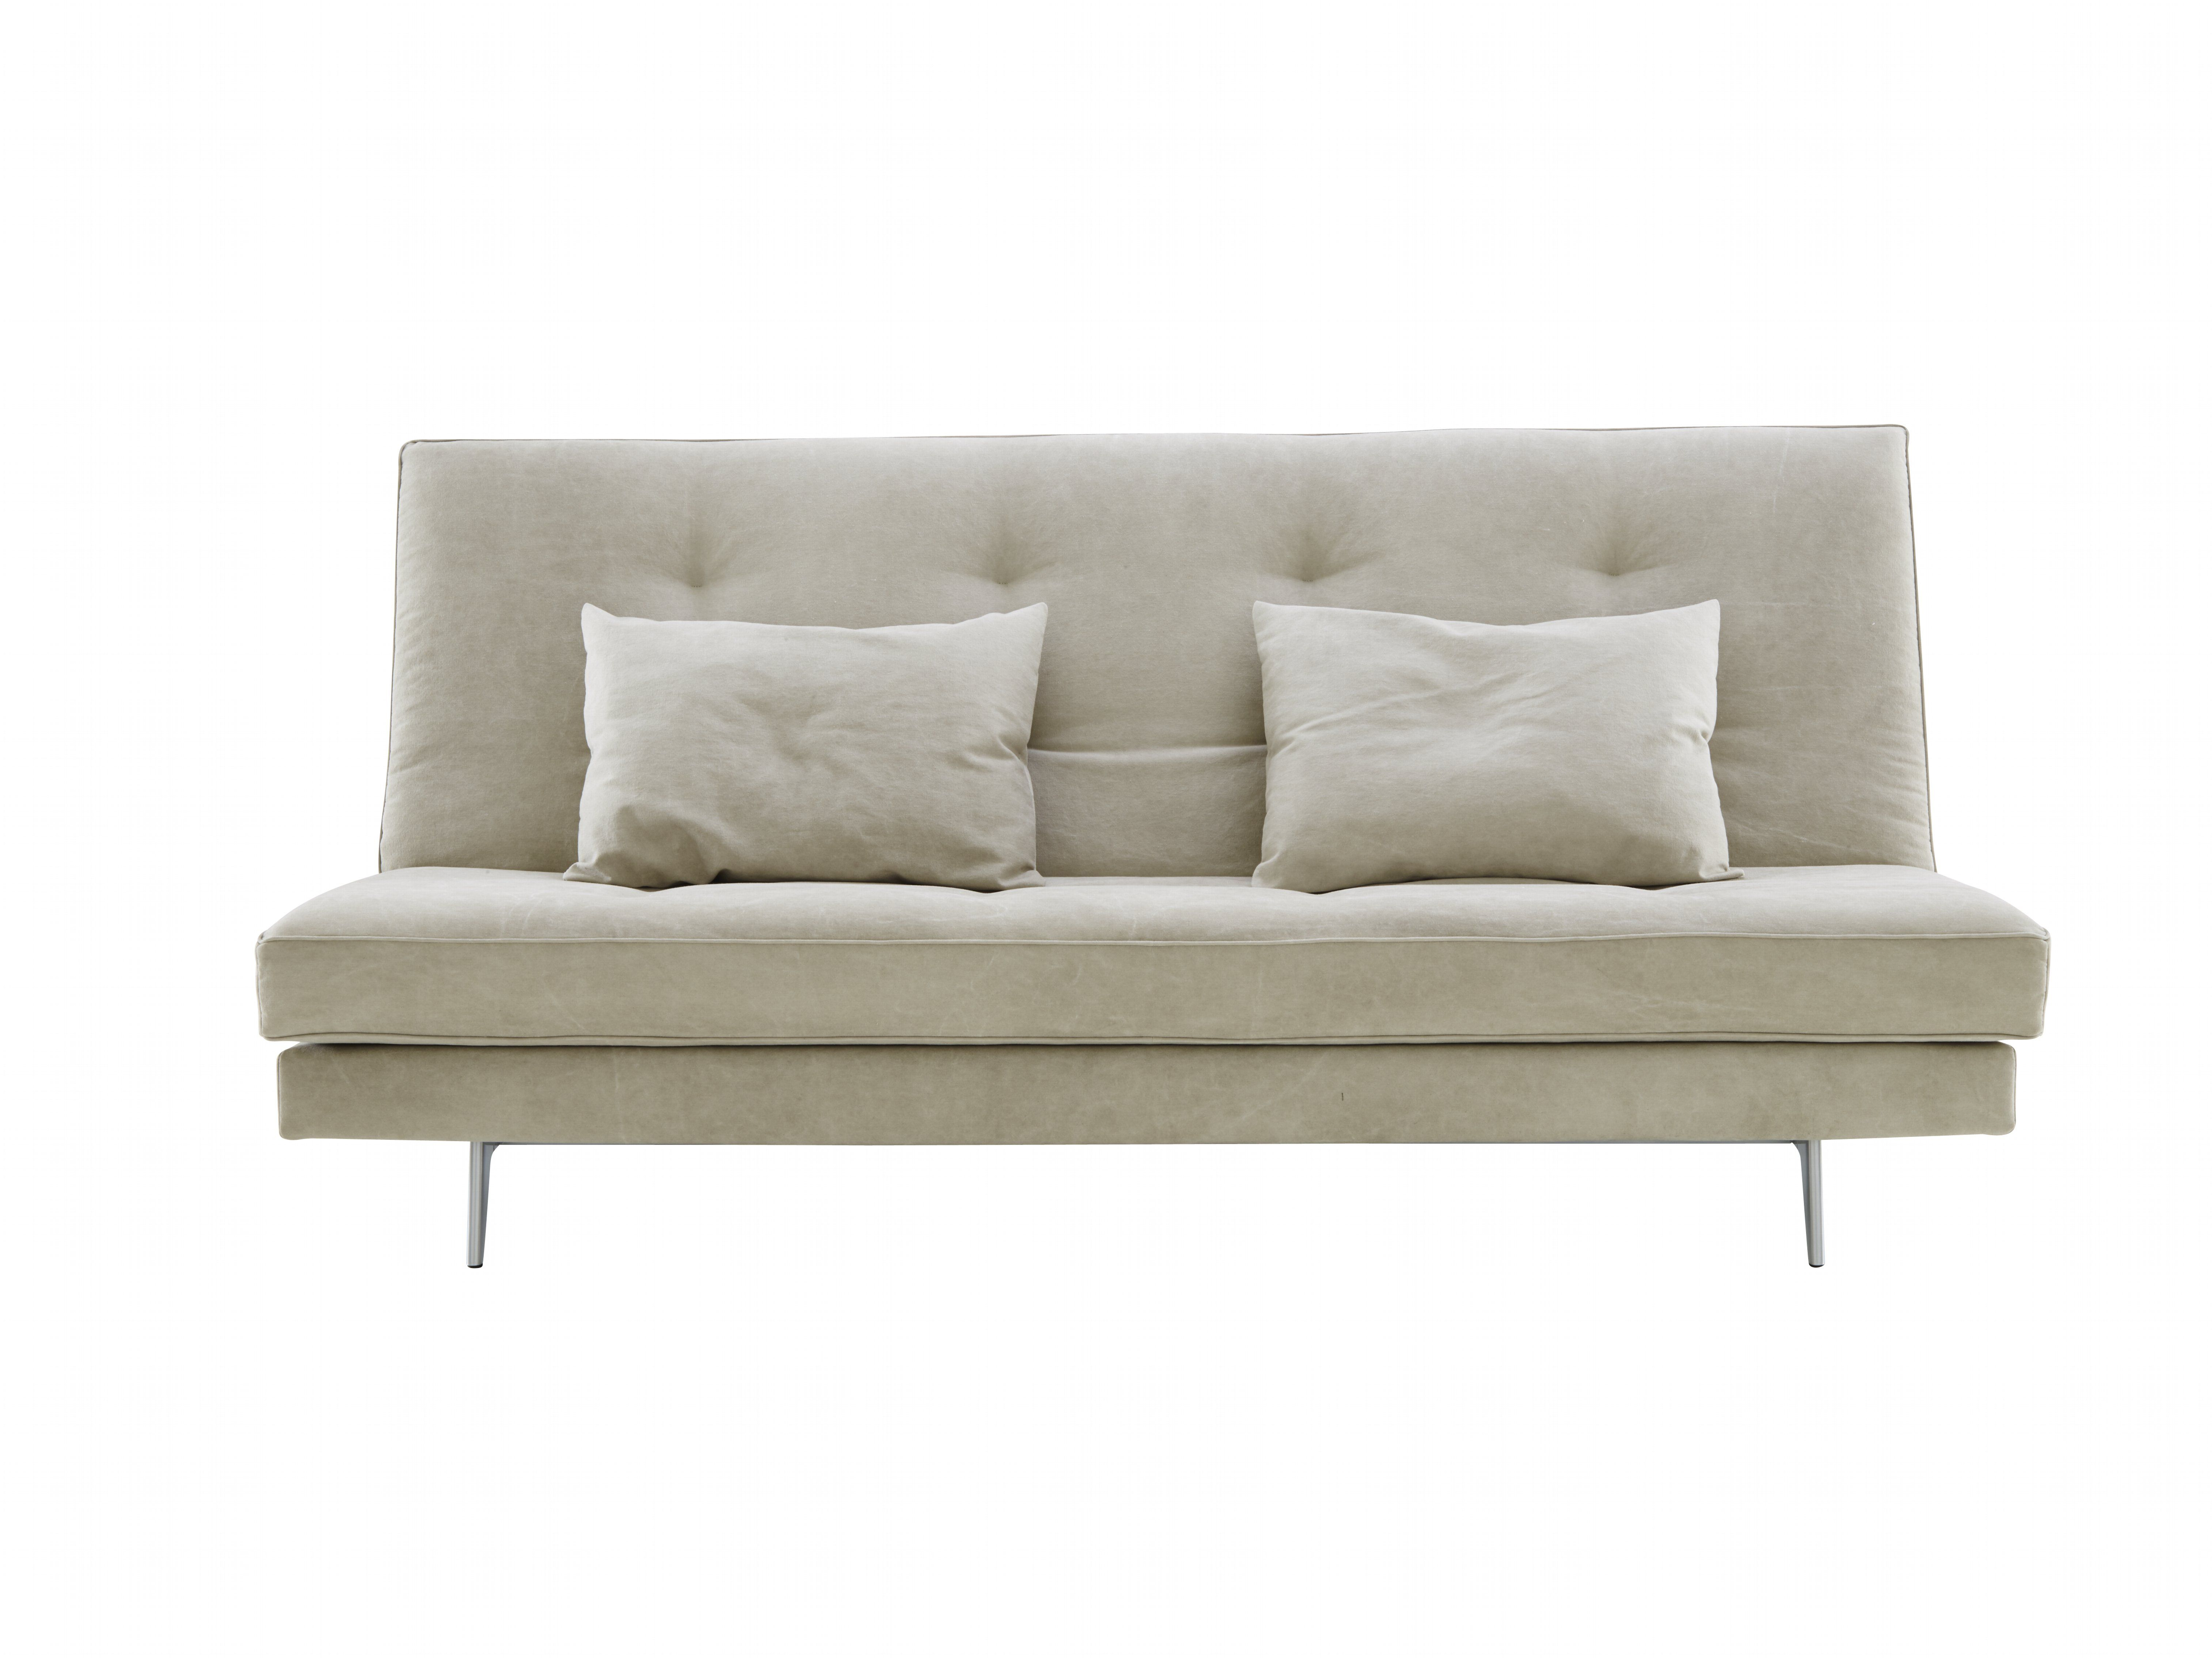 A Daily Use Bed Settee Of Deliberately Understated Elegance Well Proportioned With Moulded Aluminium Feet And Traditional Mattress Style Oned Cushions